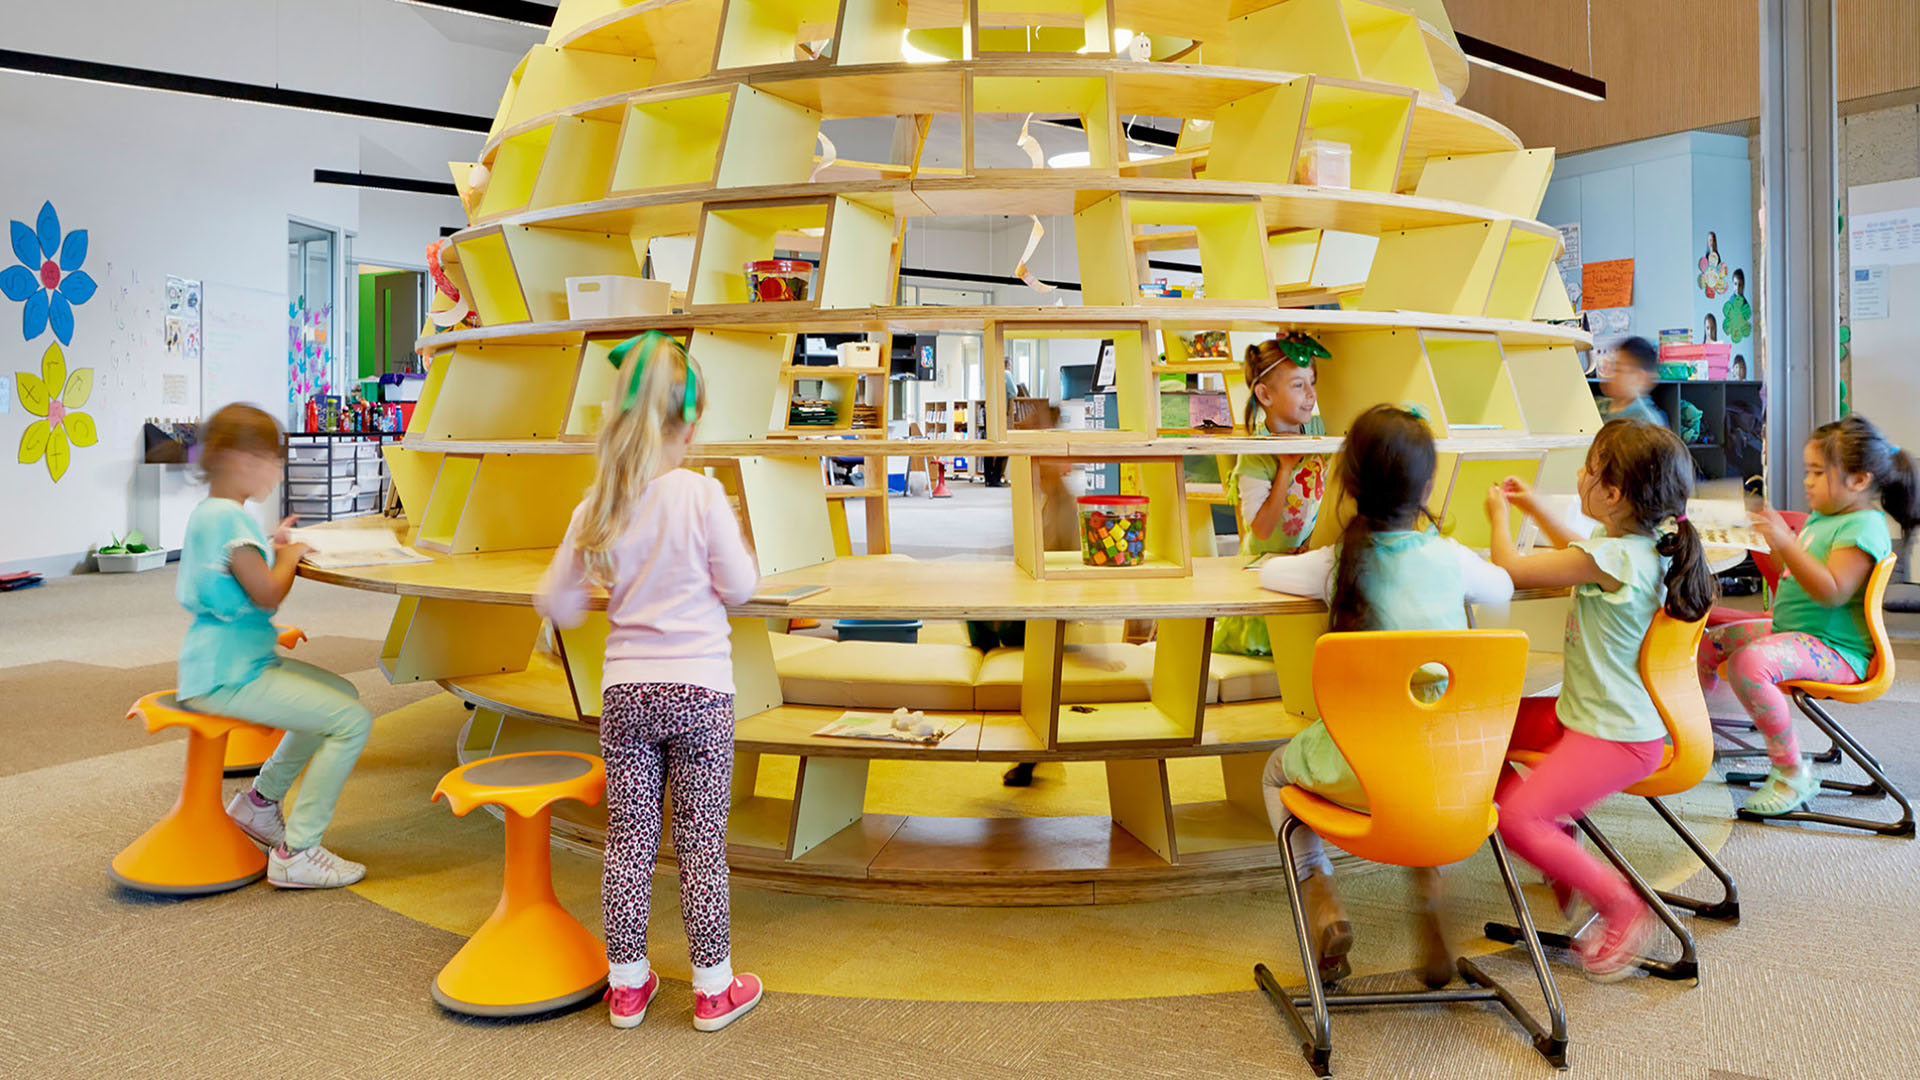 Kids sitting at and playing around a yellow beehive structure in their classroom